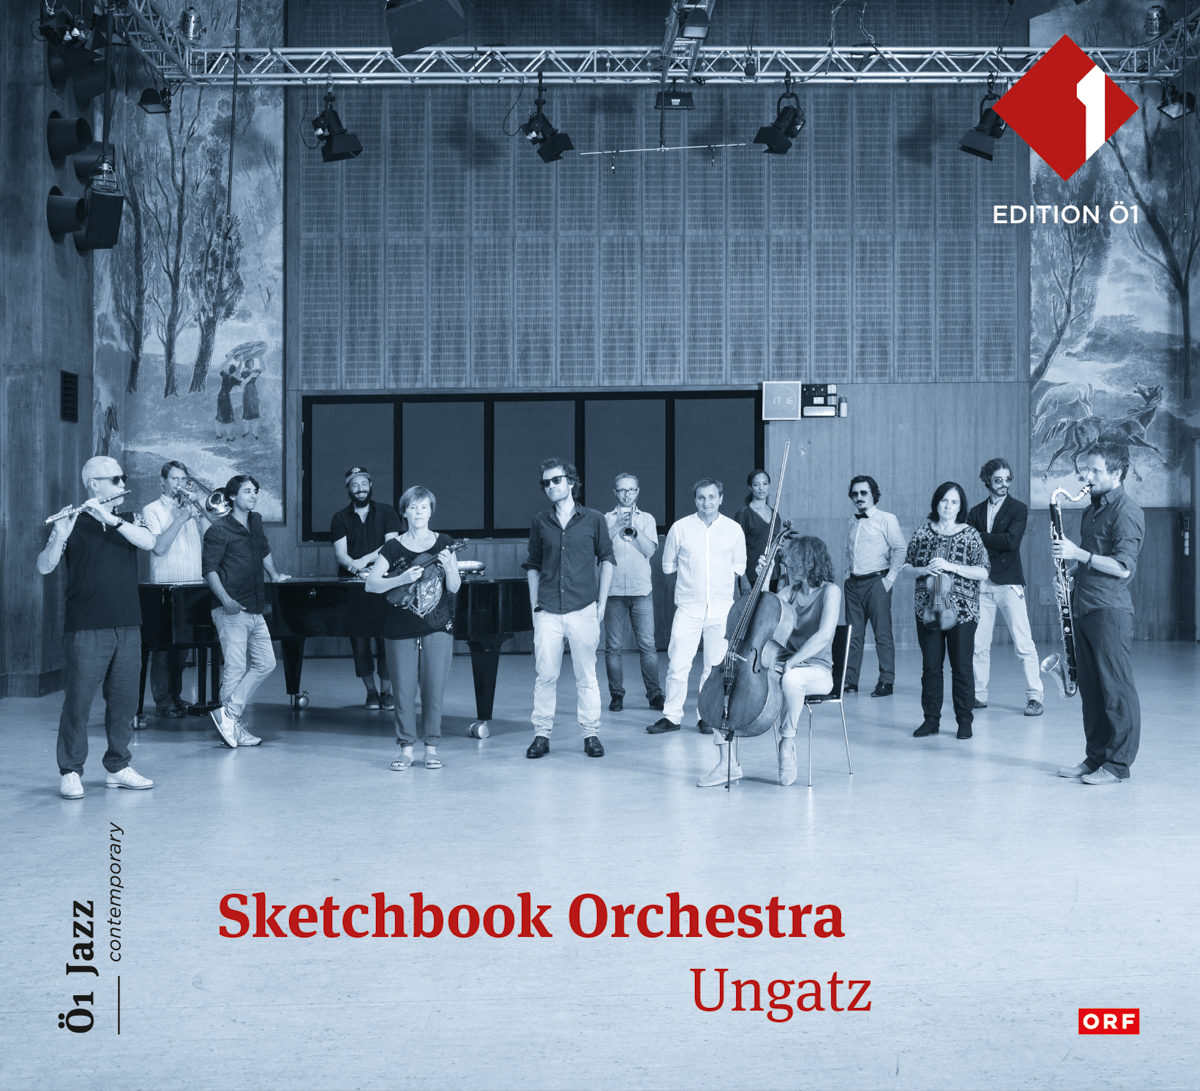 OE1 CD Sketchbook Orchestra DIGIPAK_4pp_1_TRAY.indd